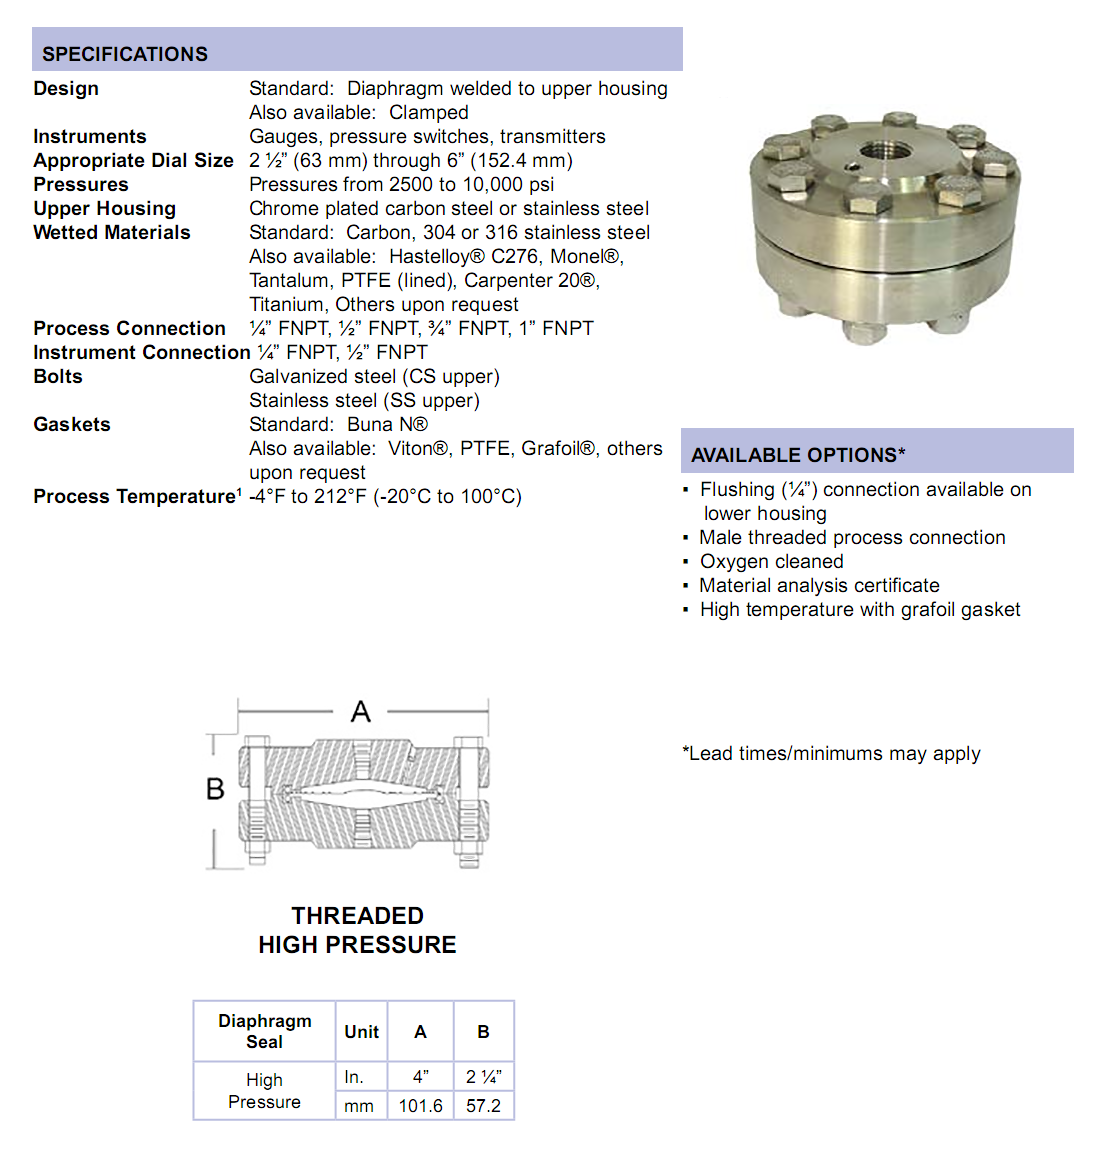 threaded-high-pressure-diaphragm-seal-specifications